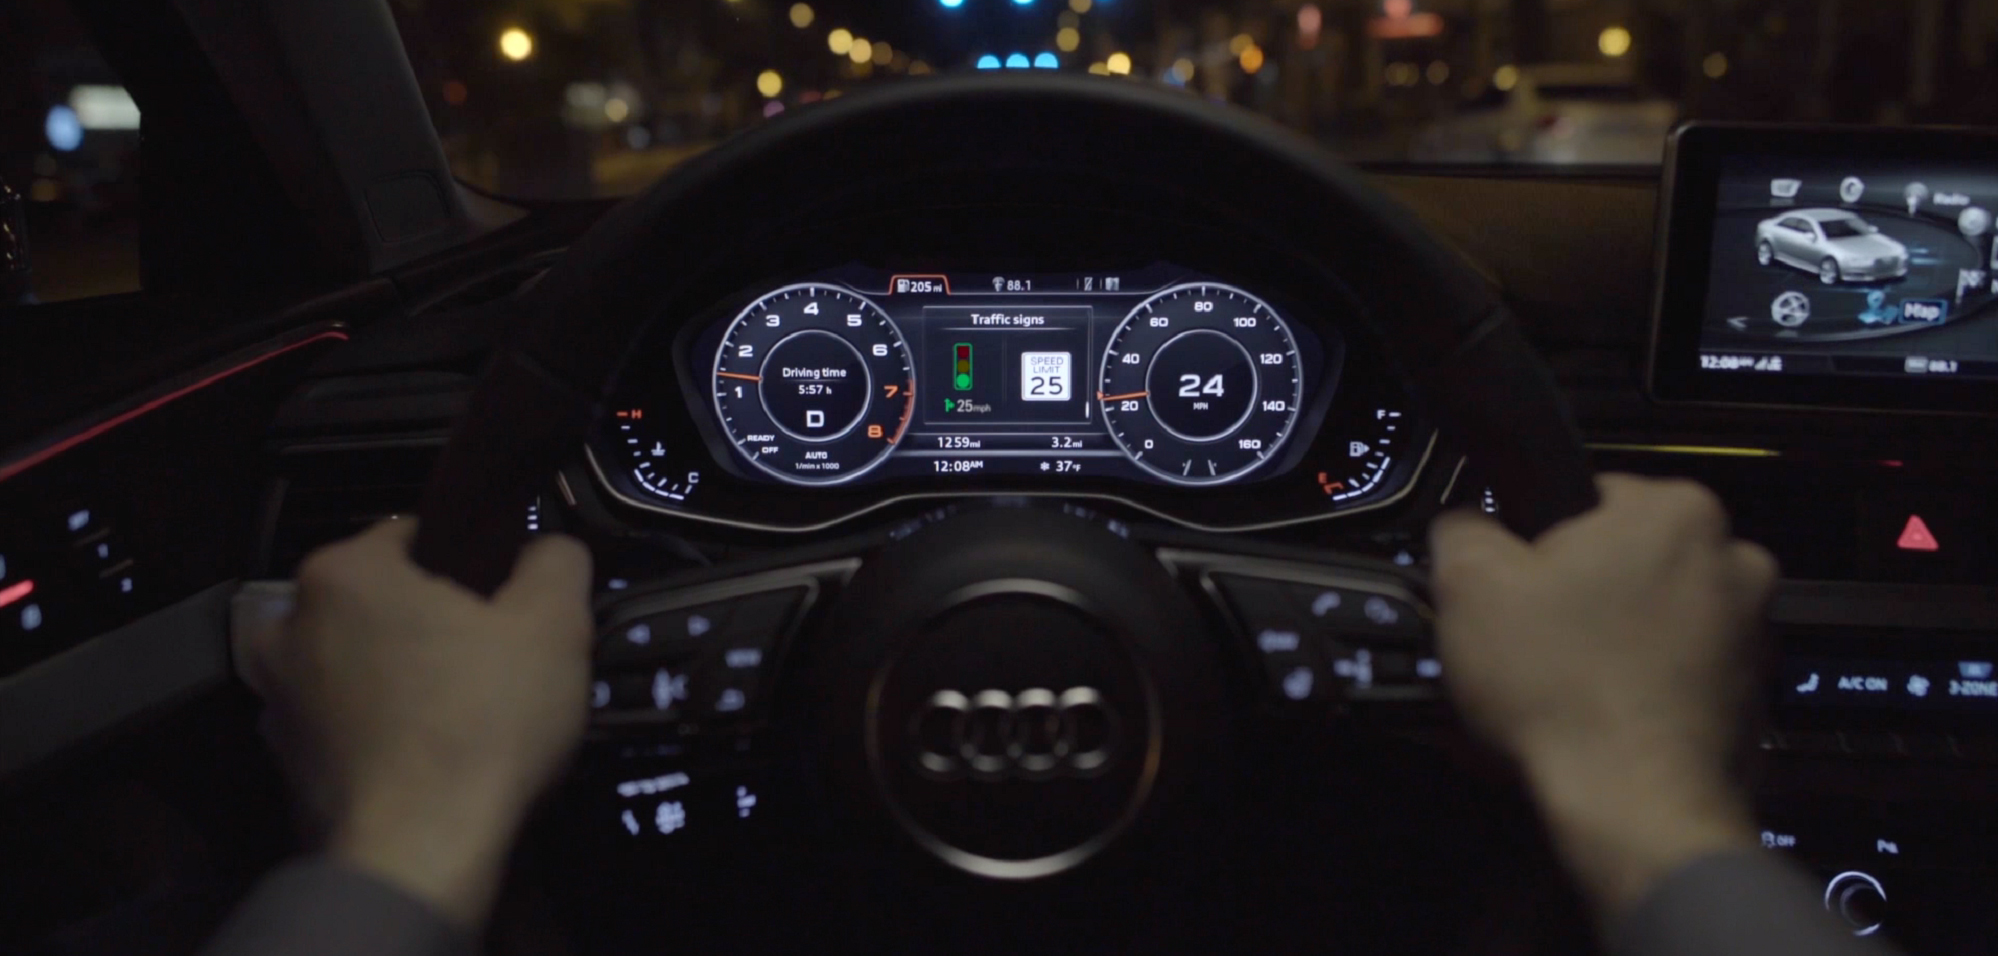 Audi's connected car technology helps drivers avoid red